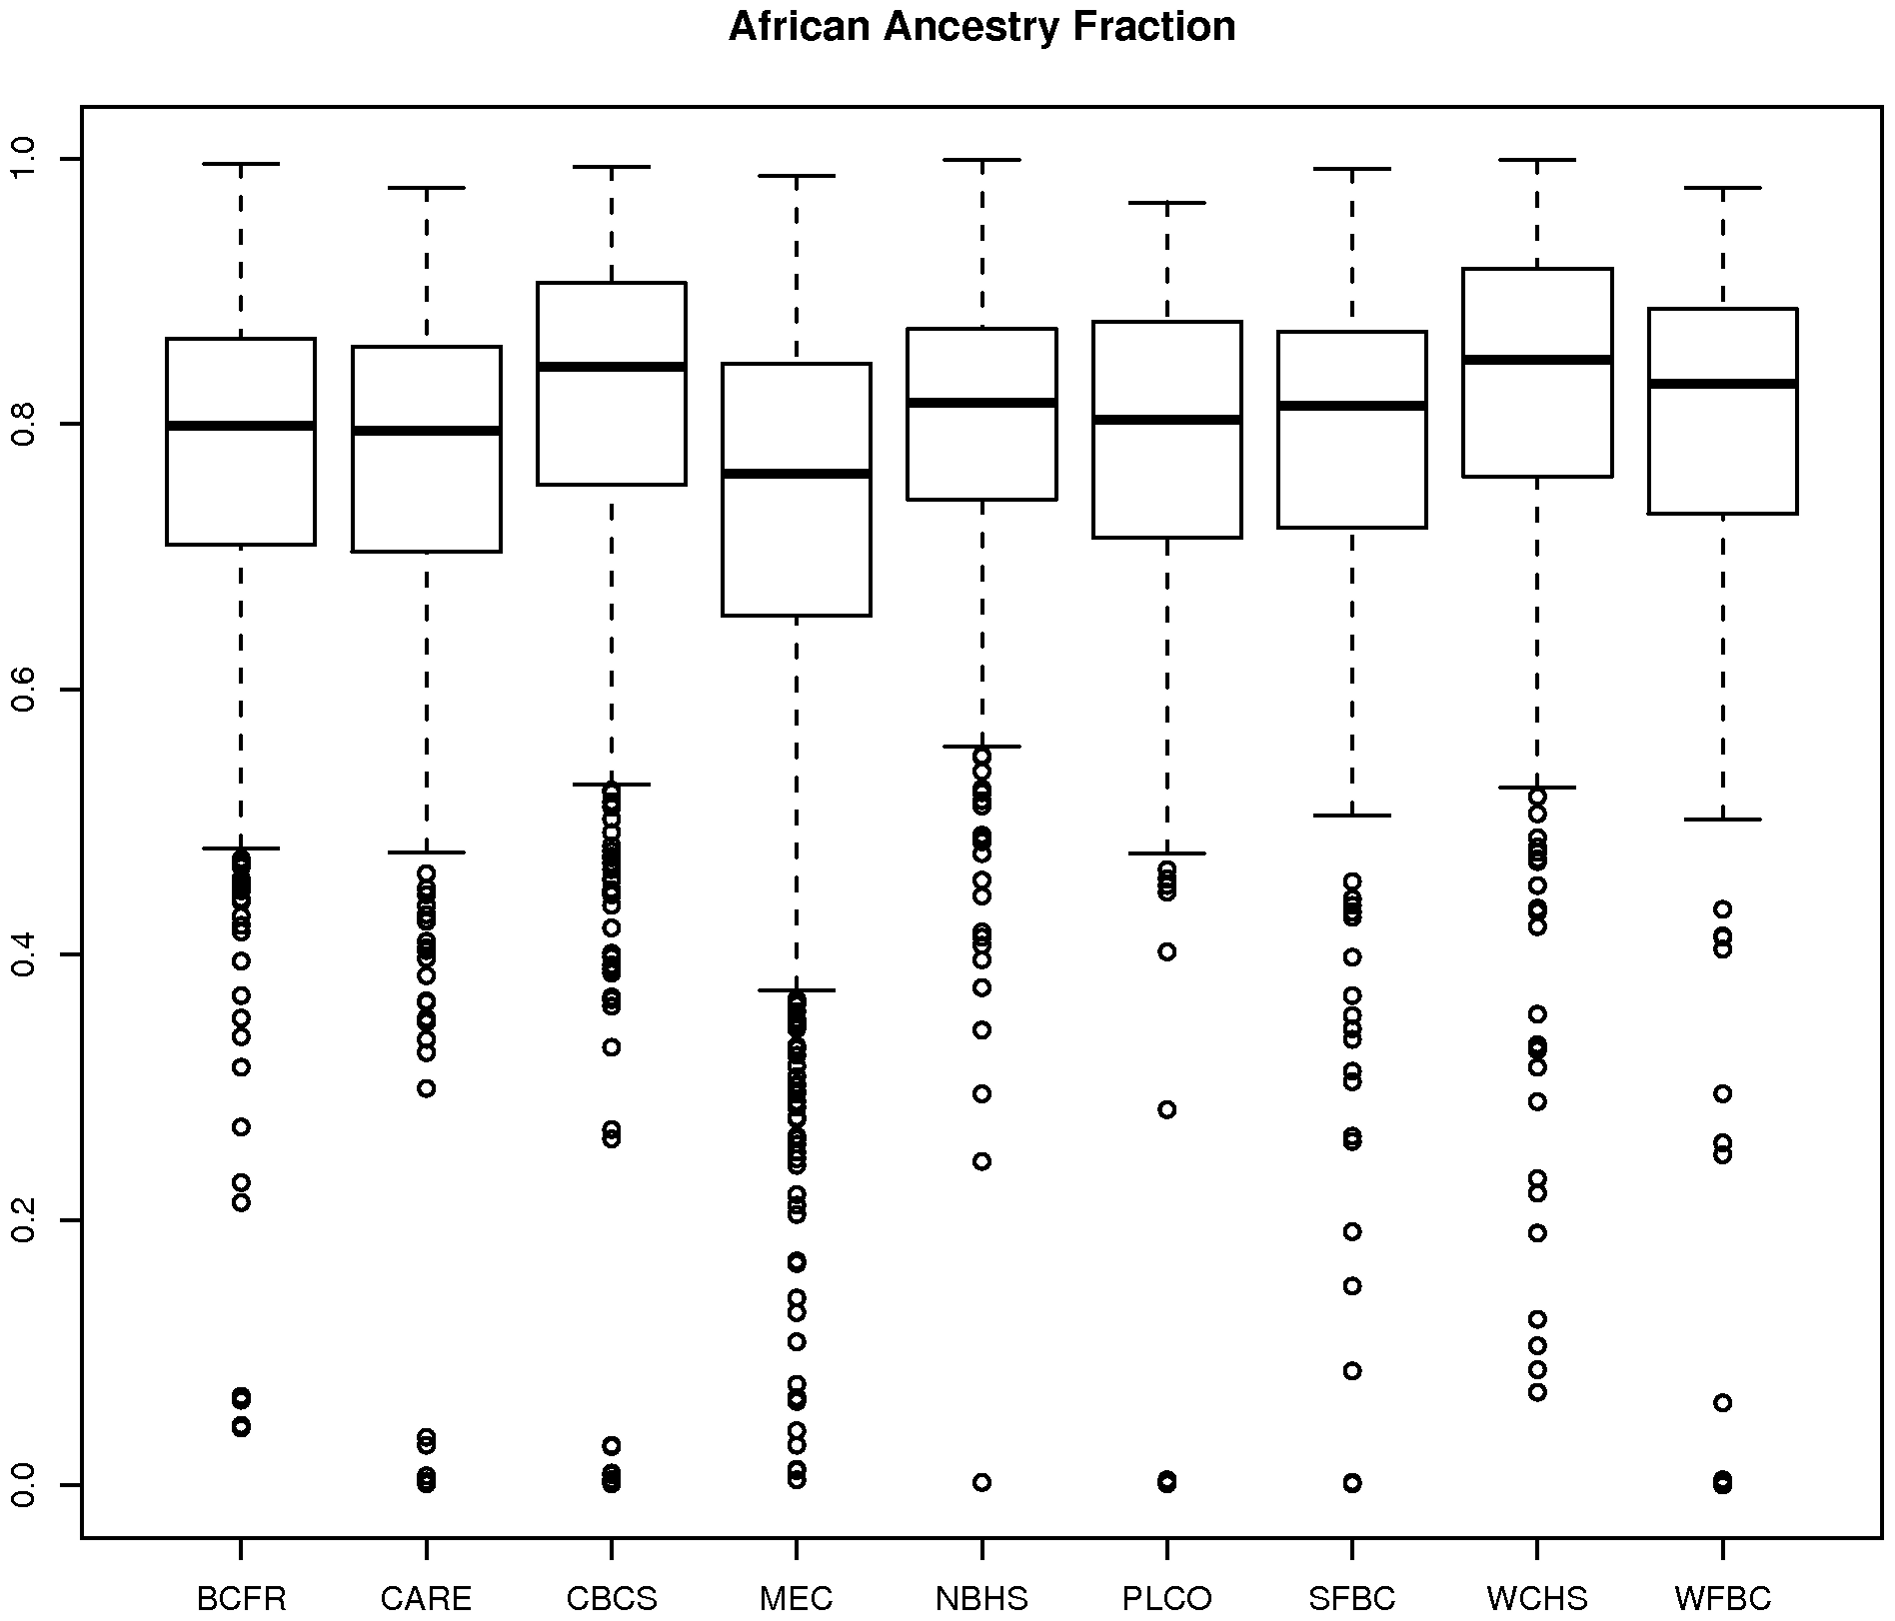 Plot of estimate of proportion of African ancestry from STRUCTURE by participating AABC study.